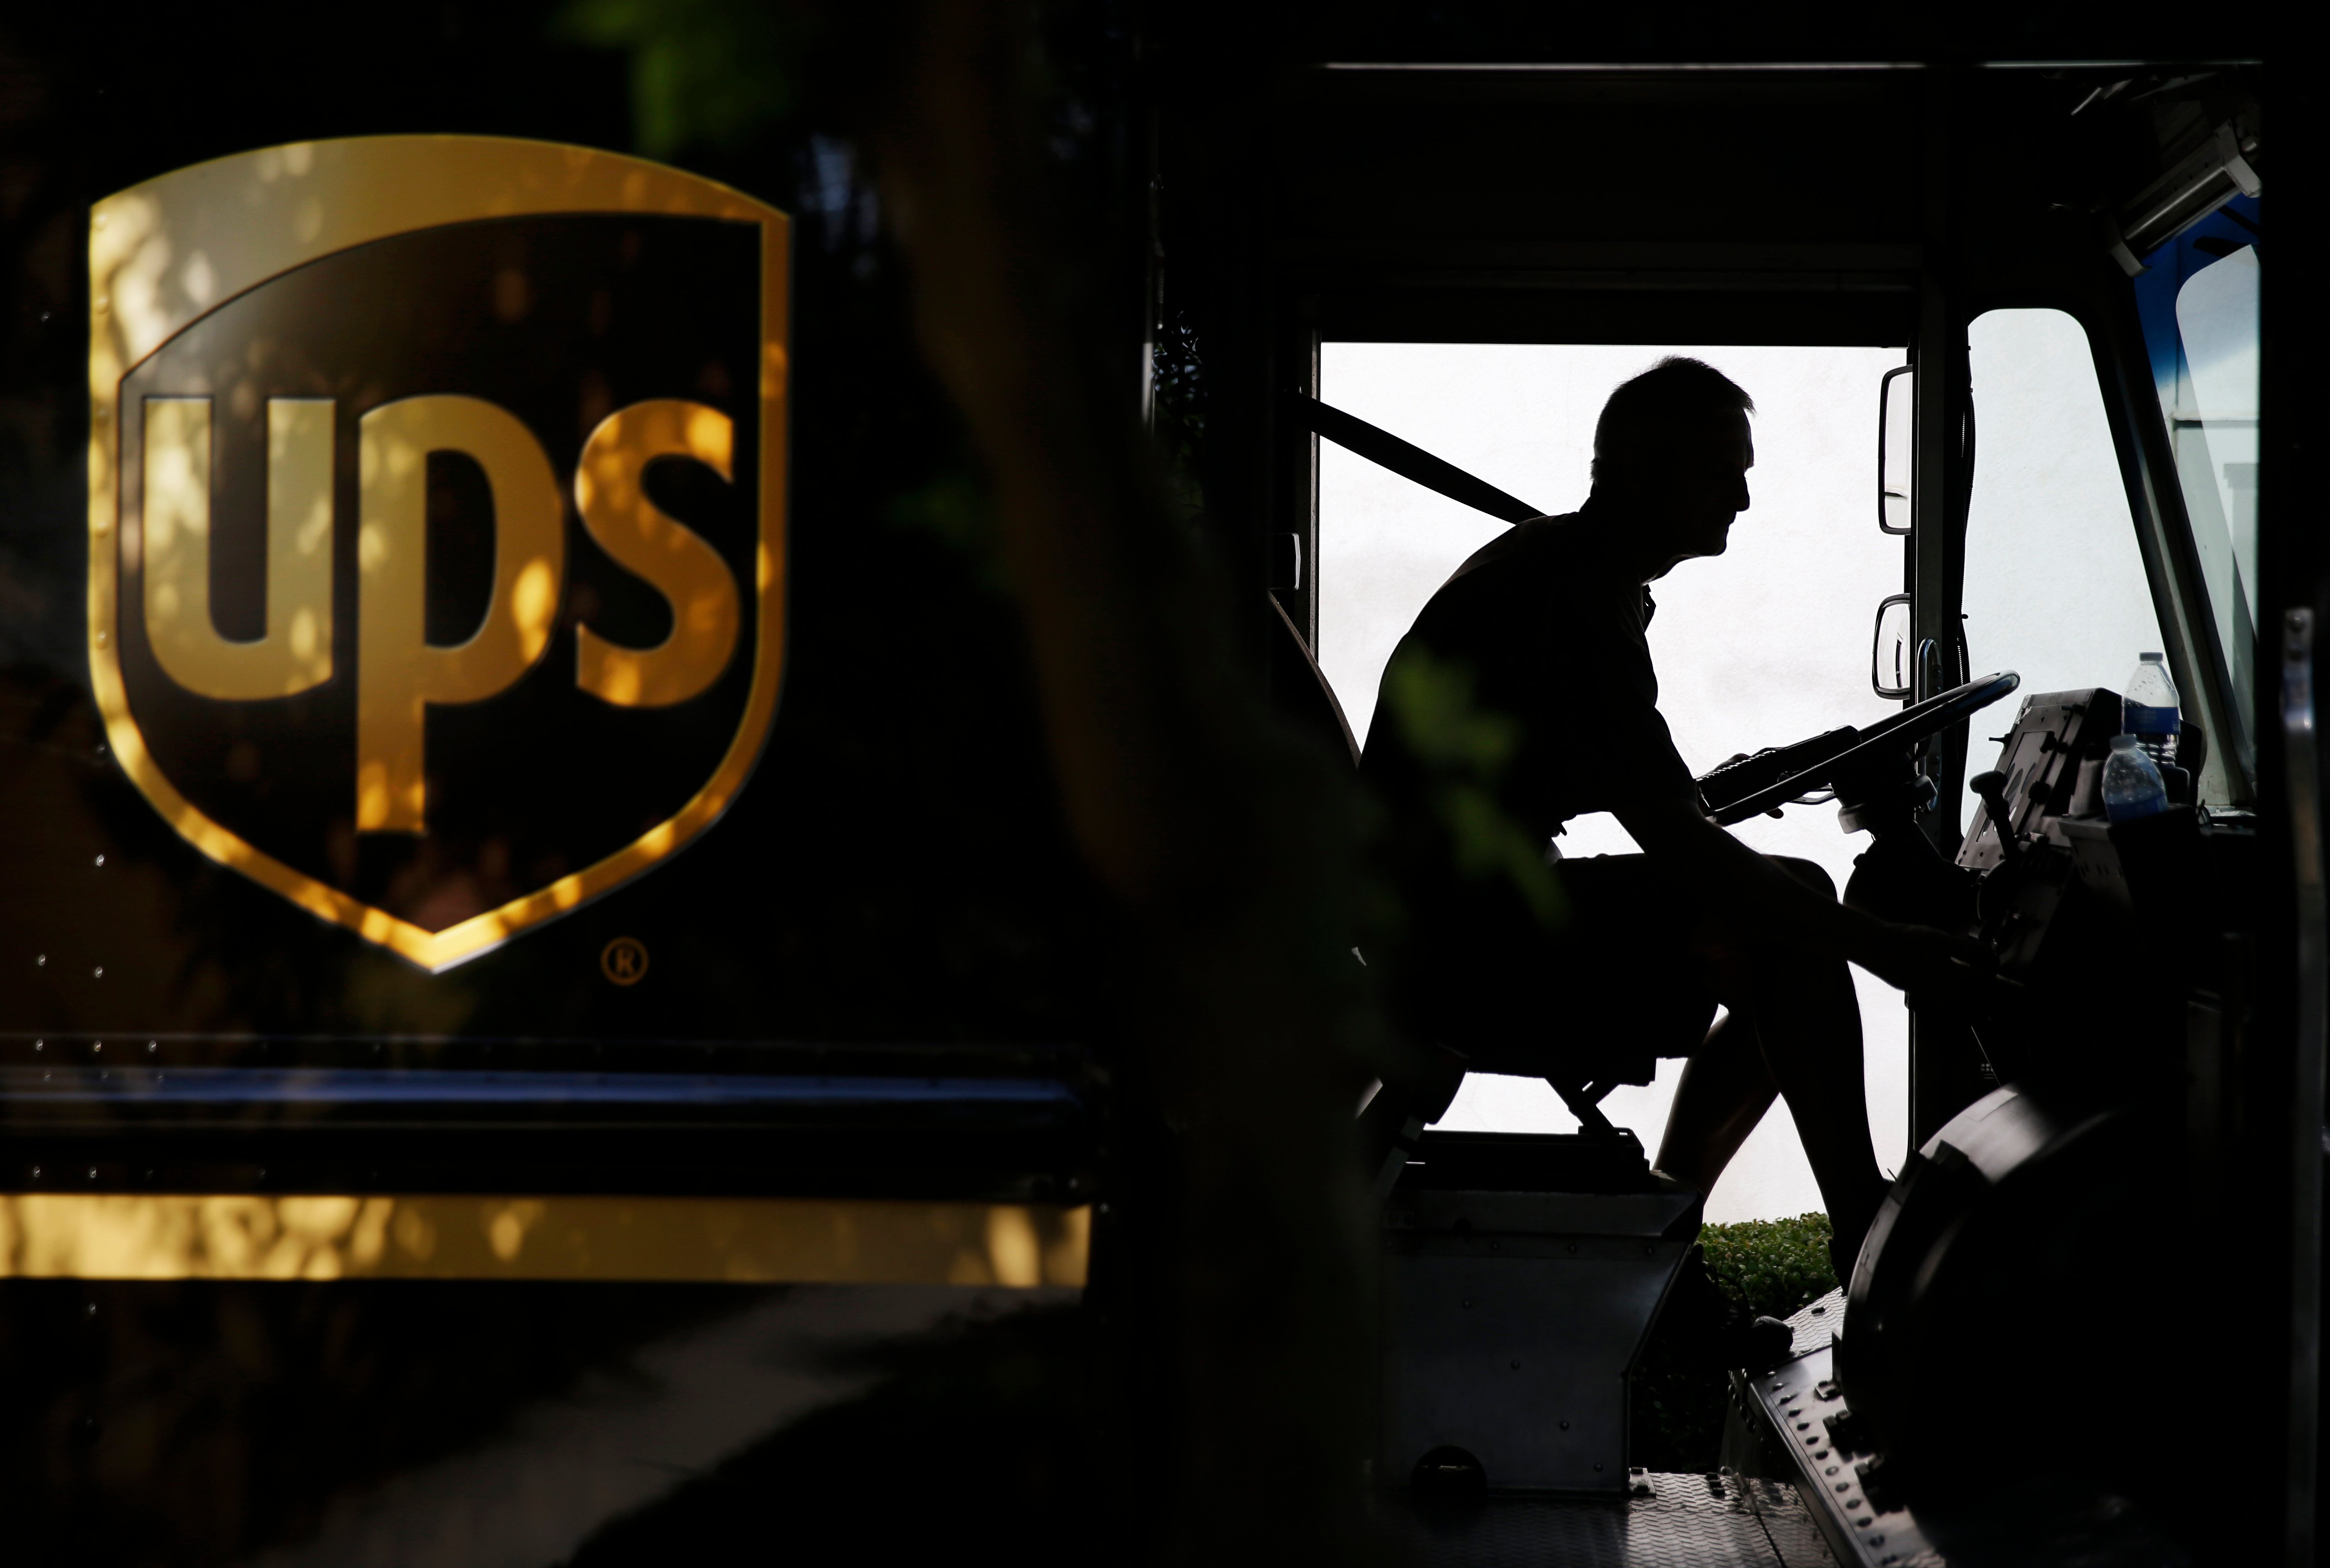 Guns Stolen From UPS and Other Shipping Companies Are Turning Up at